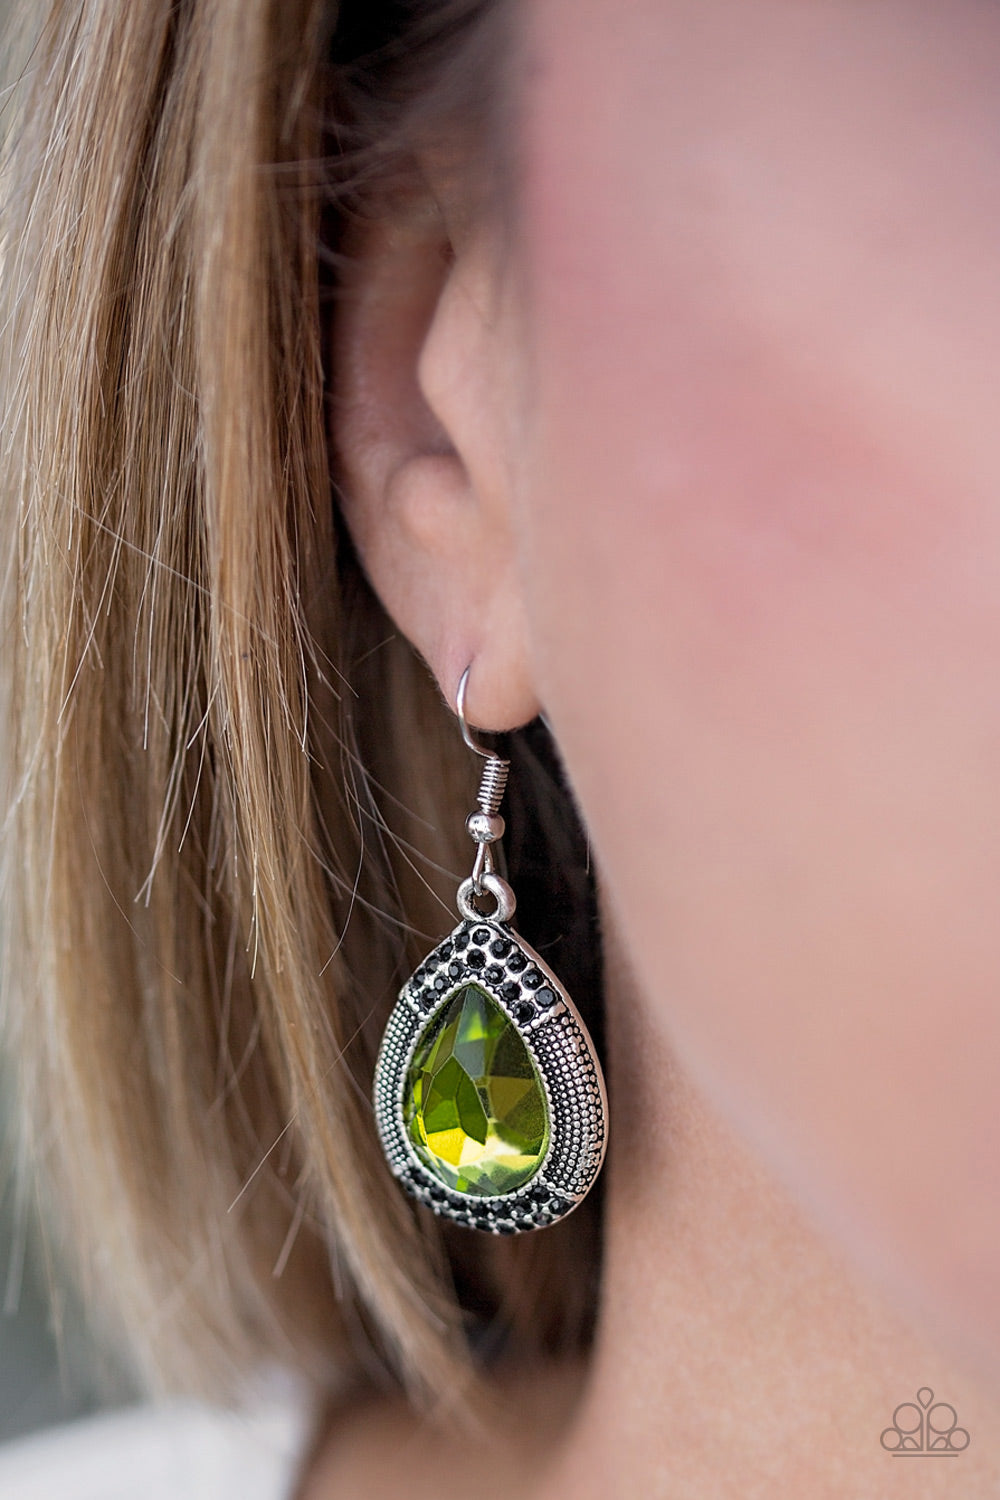 Paparazzi - Grandmaster Shimmer - Green Earrings - Classy Jewels by Linda